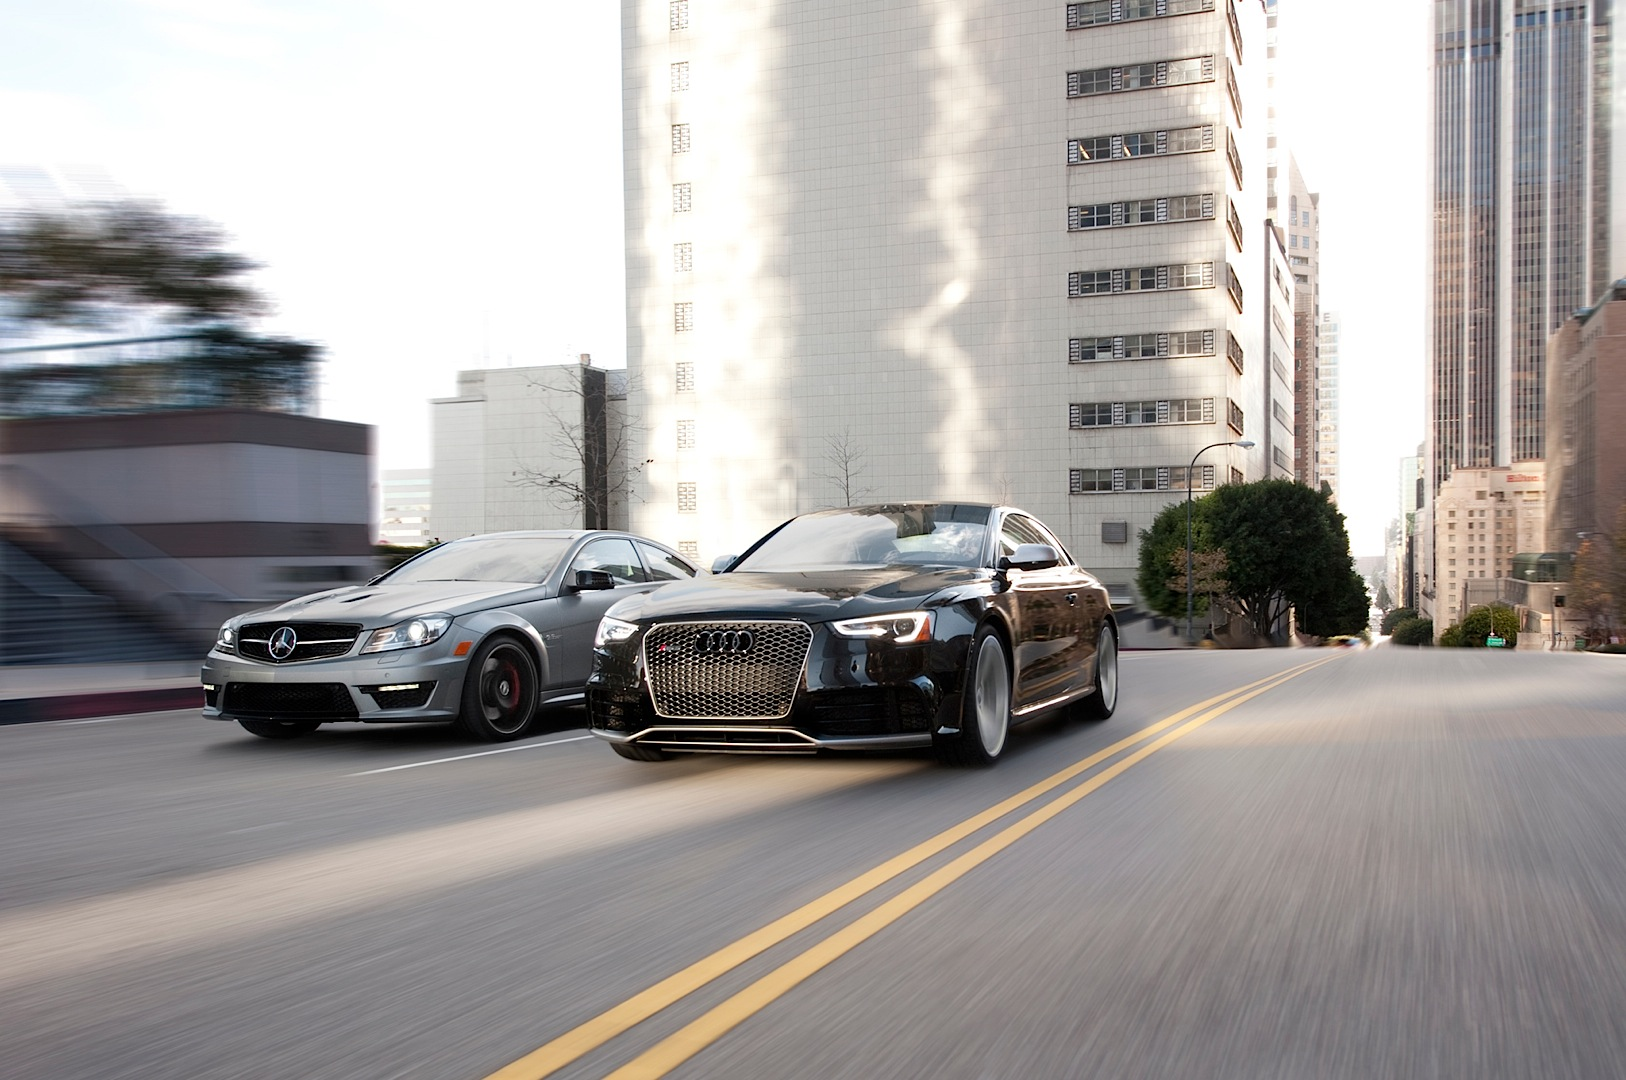 Mercedes Benz C 63 Amg Coupe Edition 507 Vs Audi Rs5